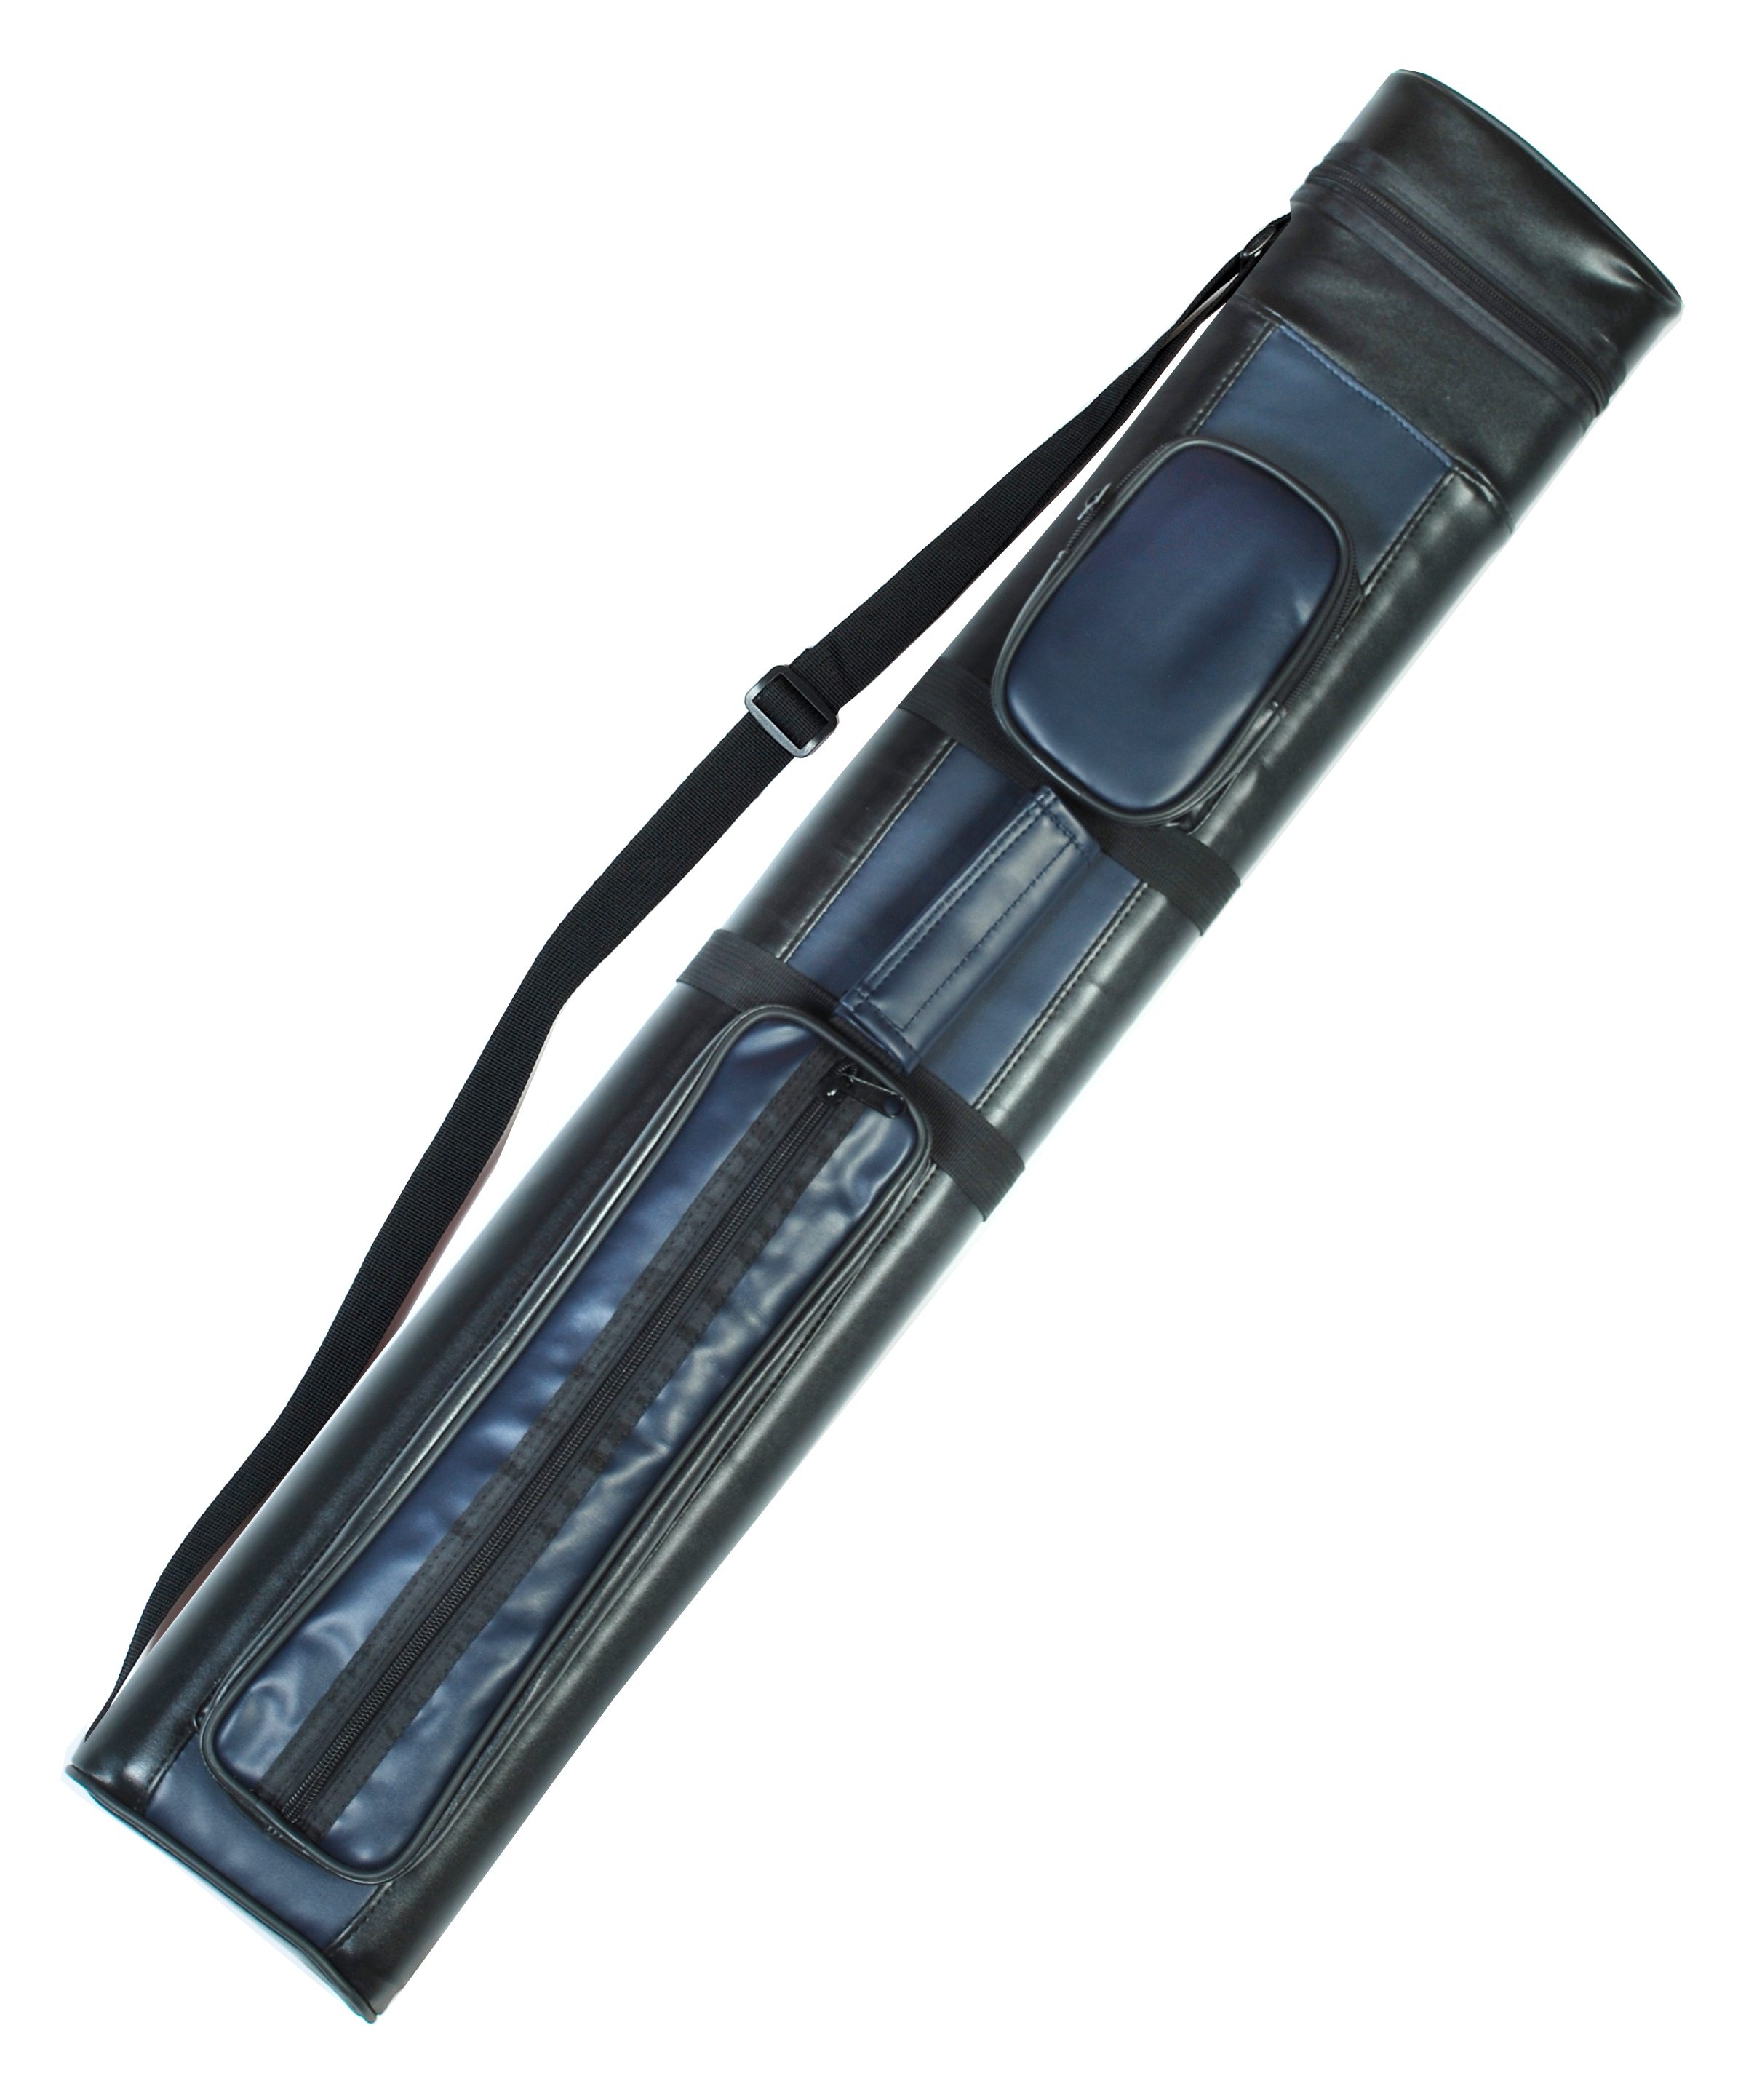 2X2 Hard Billiard Stick Pool Cue Case 2 x 2 Blue Black by